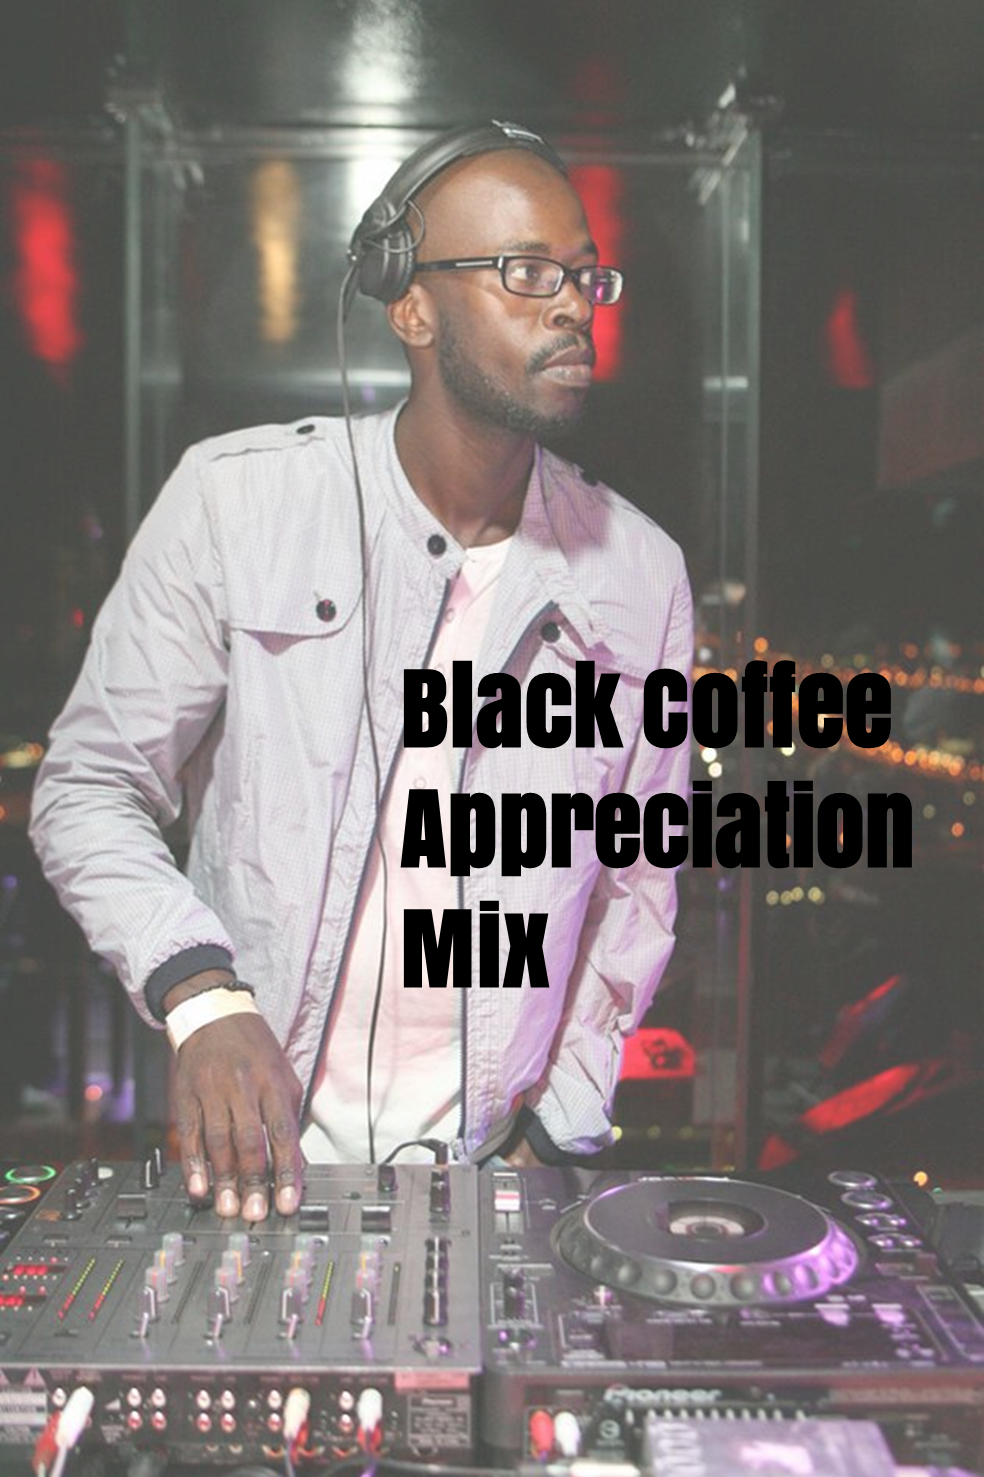 black coffee - welcome to 2017 (beats 1 mix) [deejay mix] 2k17